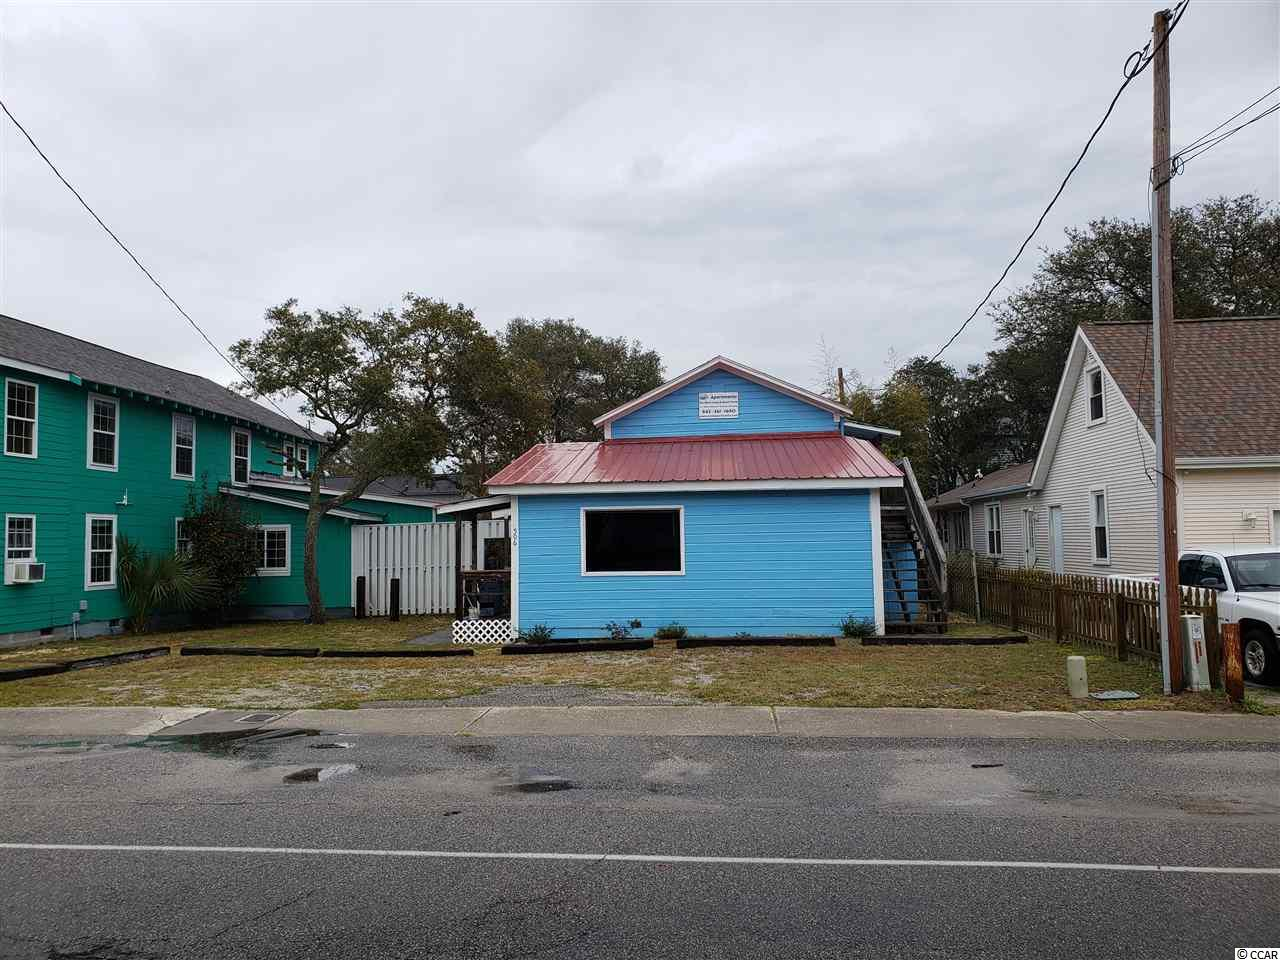 3 units total built on a commercial zoned lot, a block from the ocean in NMB. The property offers two 1 BR / 1 bath units and one 4 BR / 2 baths unit. 508 & 510 17th Ave S. are also for sale.